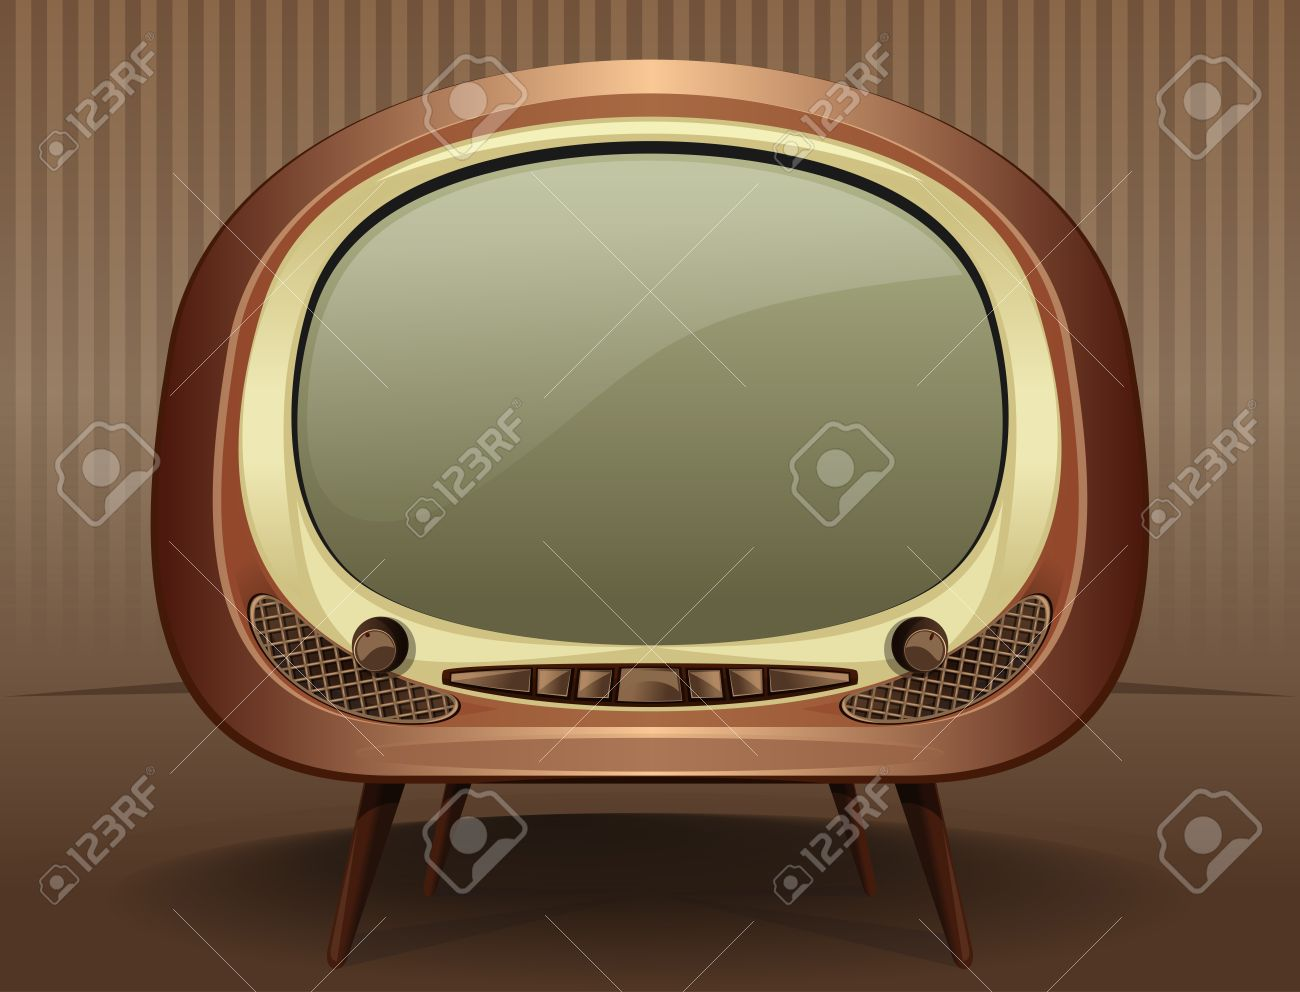 vintage tv vintage television in the style of the 50s 60s